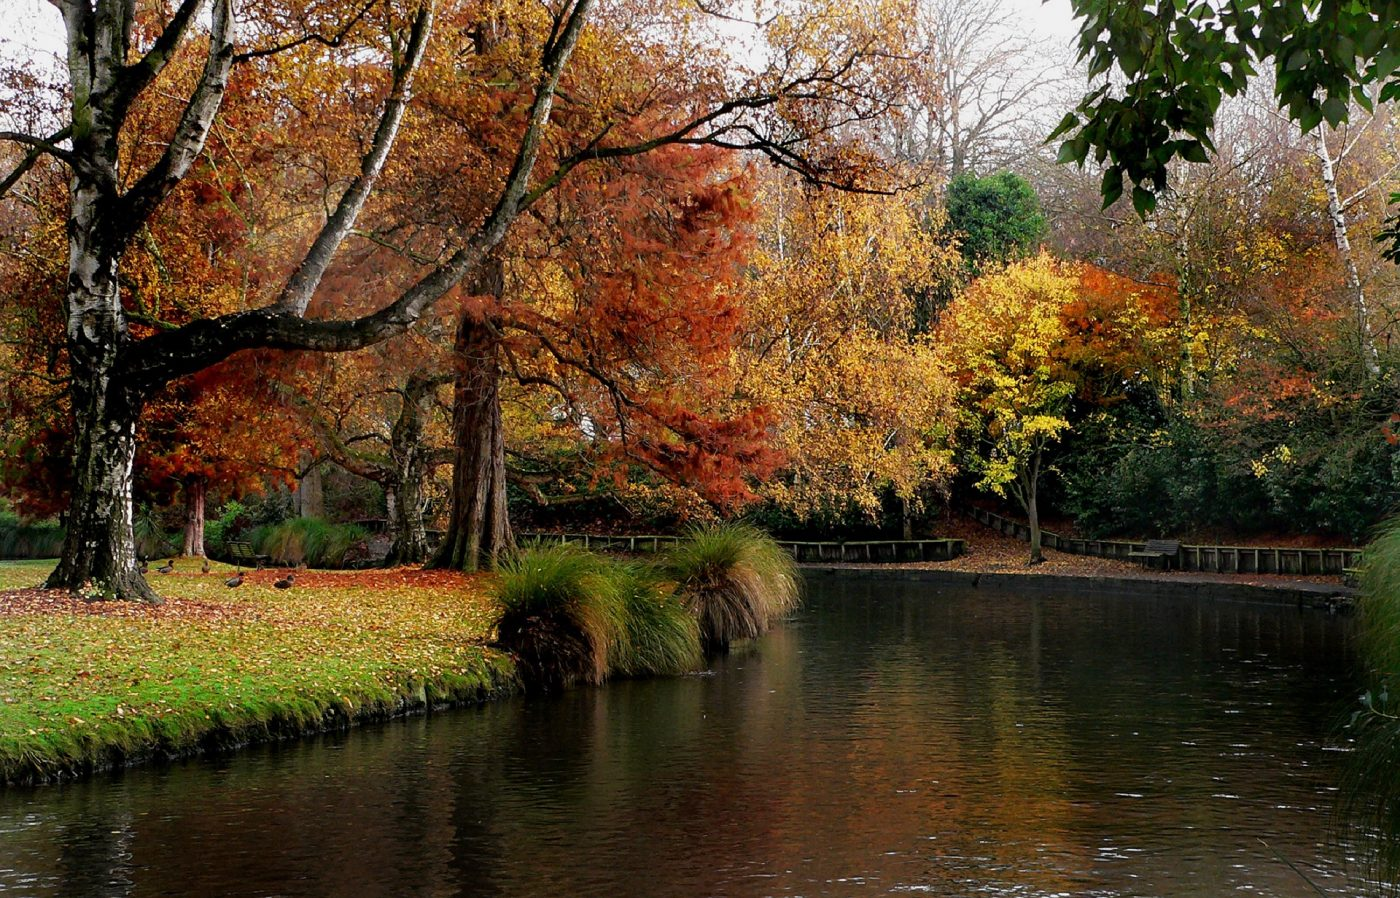 Things to do in New Zealand include the Botanic Gardens in Christchurch